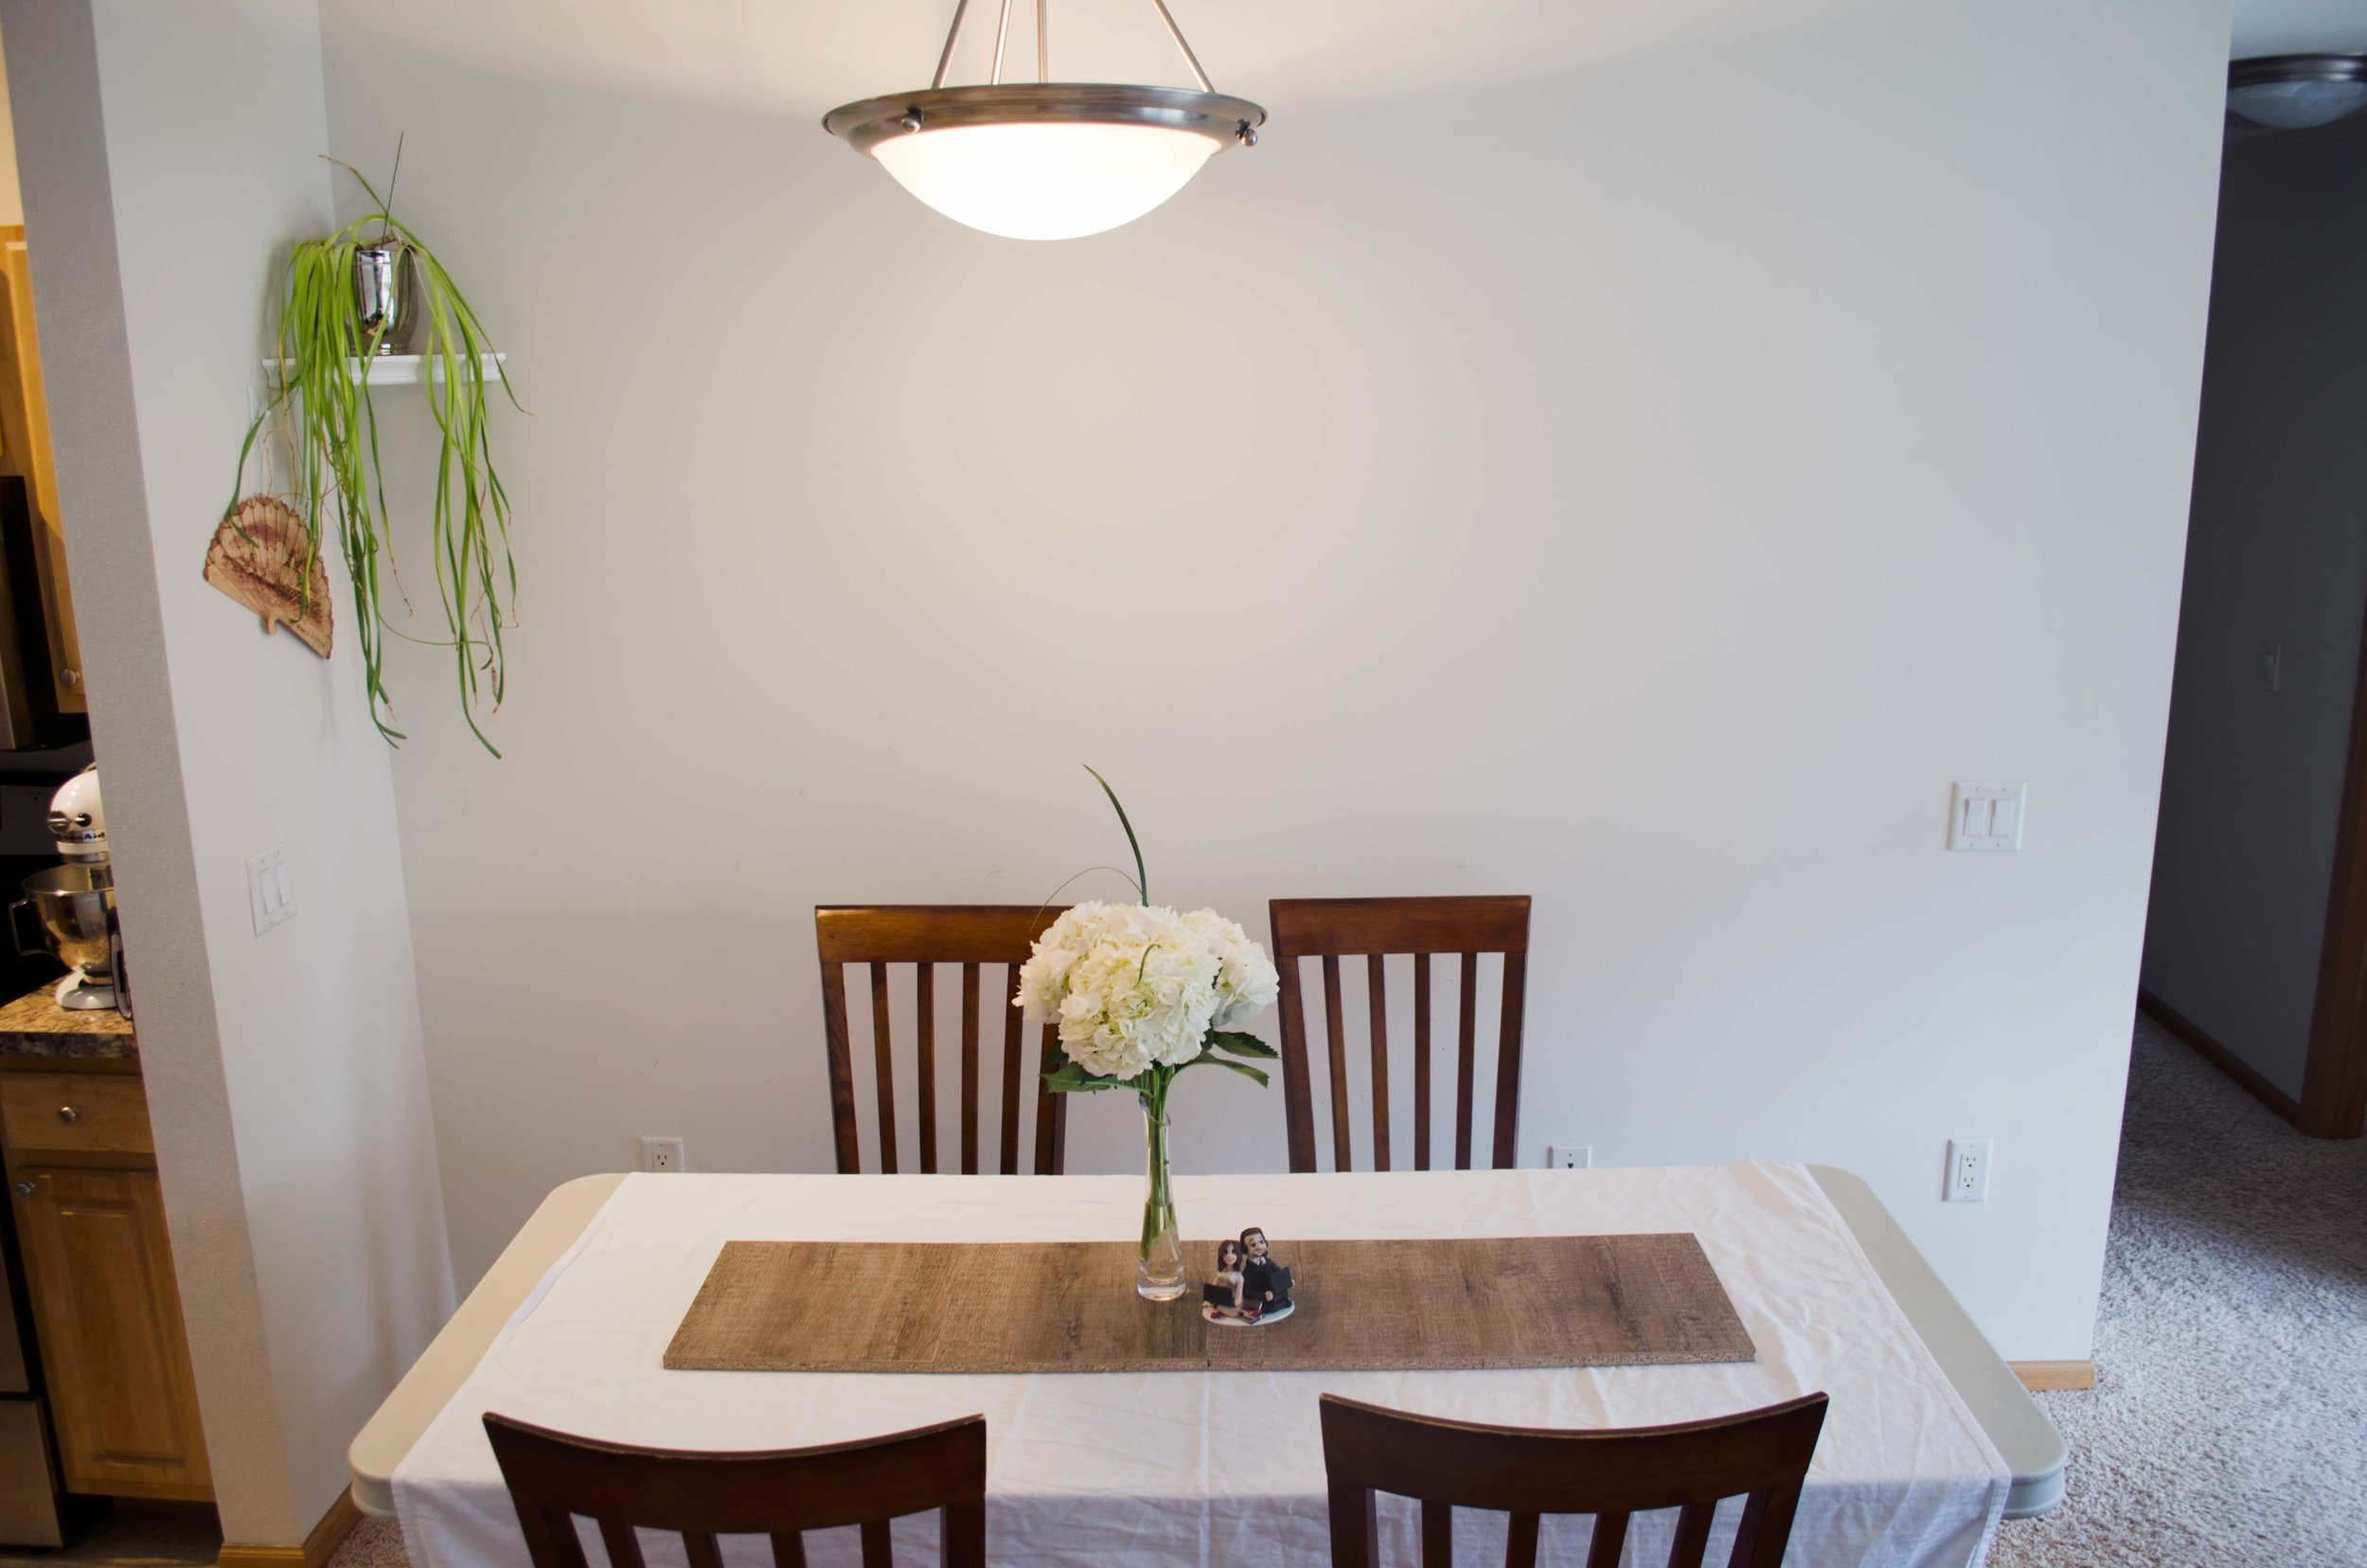 House Tour - The Dining Room